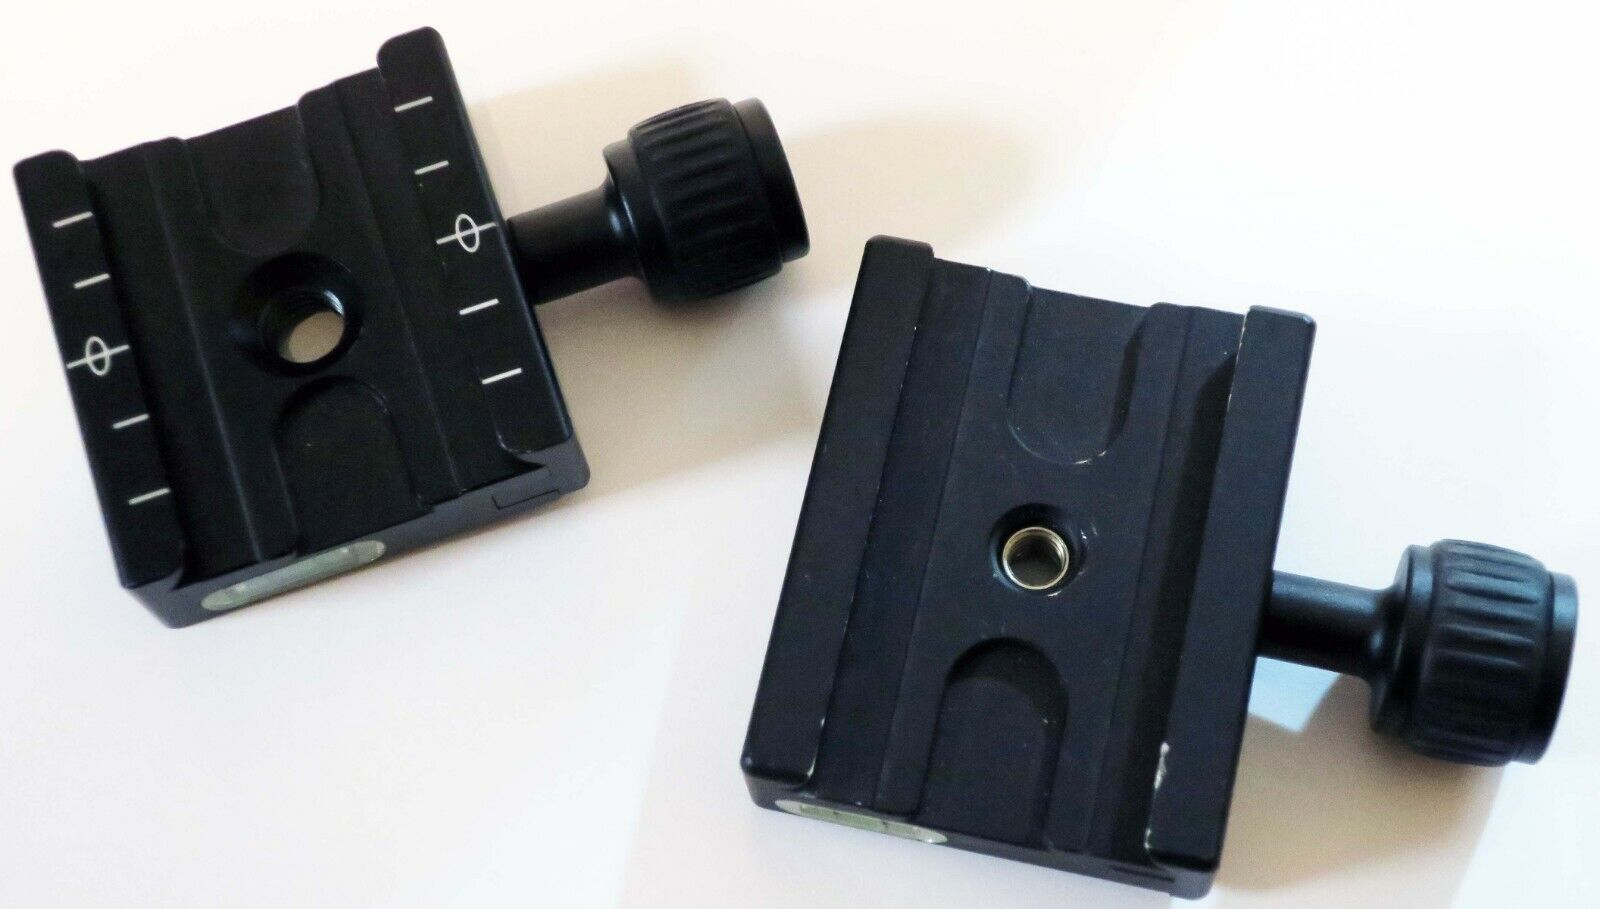 2 x Rail Clamps used with Macro Focusing Rail Slider for Close-up Shooting